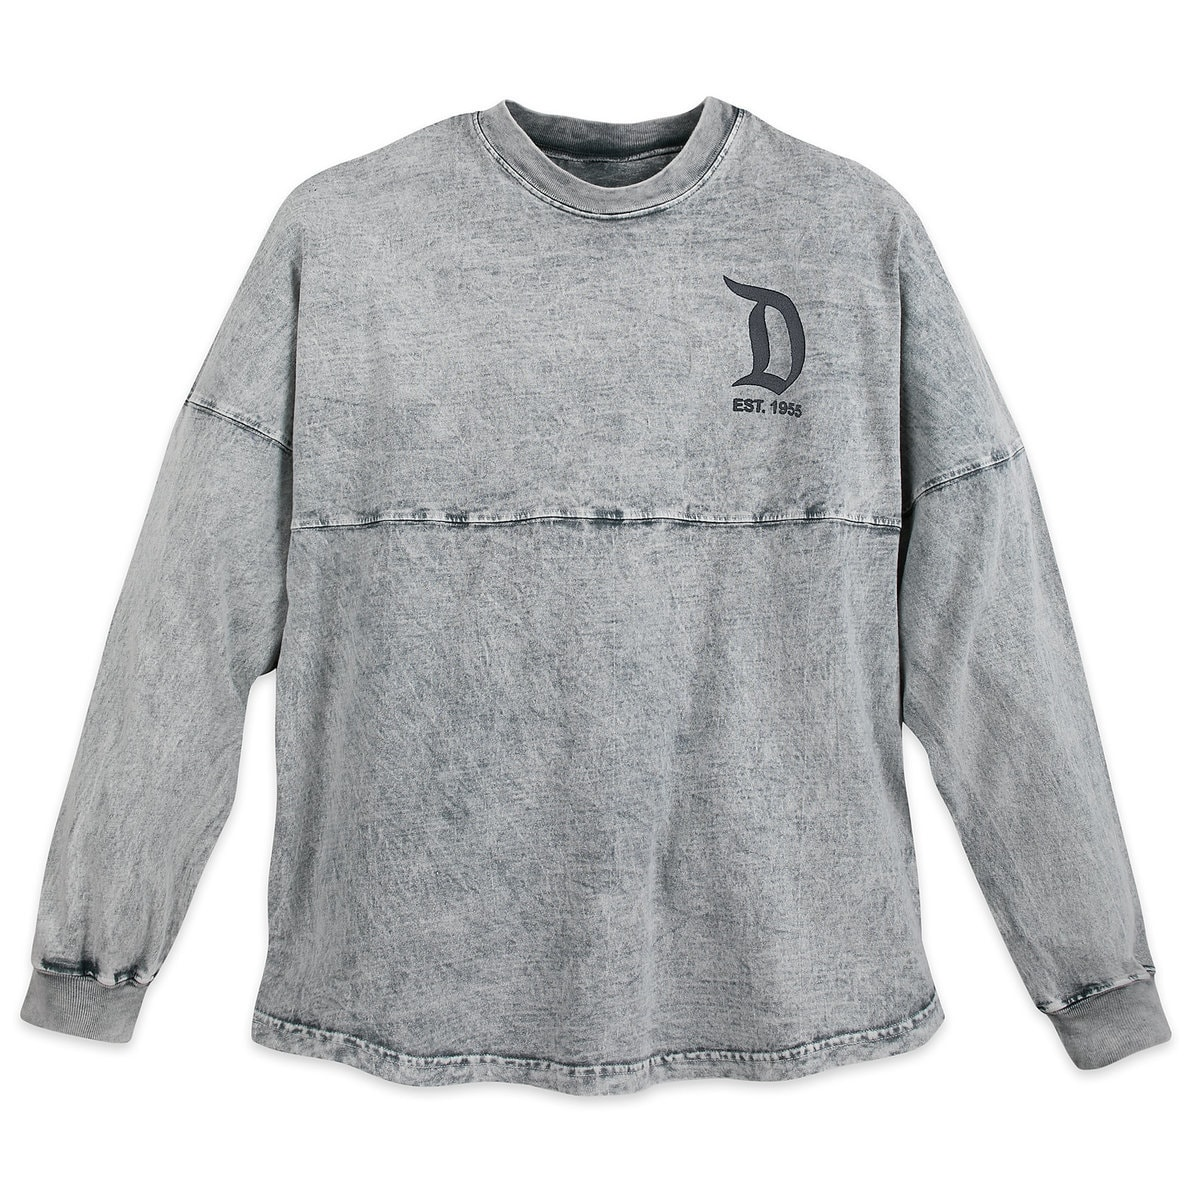 88bfc10ea8c Product Image of Disneyland Mineral Wash Spirit Jersey for Adults - Gray # 1